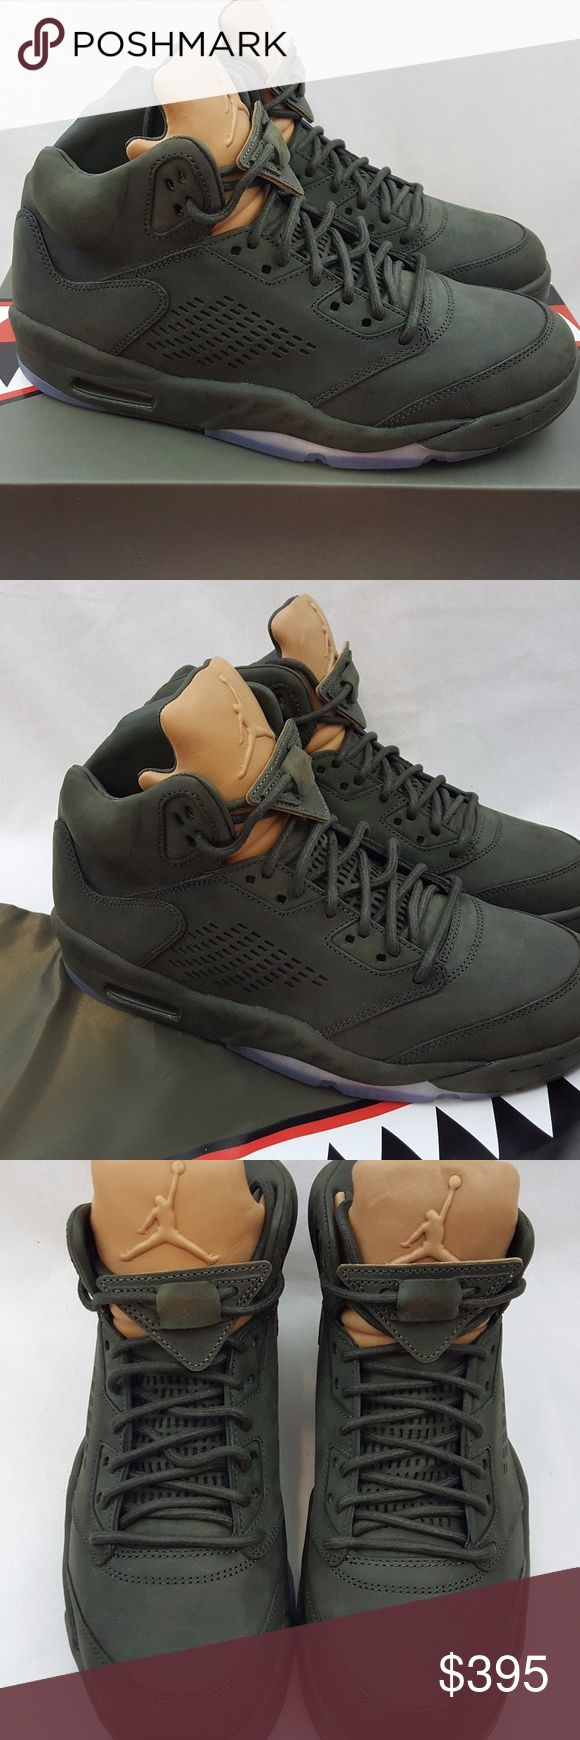 """Nike Air Jordan V 5 Premium Nike Air Jordan V 5 Premium Size 10 """"Take Flight"""" 881432-305 Sequoia Undefeated Brand: Nike Name: Air Jordan V 5 Premium """"Take Flight"""" Colorway: Sequoia/Metallic Gold Style Code: 881432-305 Year of Release: 2017 Size: 10 Condition: Brand new with box Included Accessories: Comes with carrying bag. Does not have the card insert. Additional Information: 100% authentic merchandise or your payment will be refunded in full. Air Jordan Shoes Athletic Shoes"""